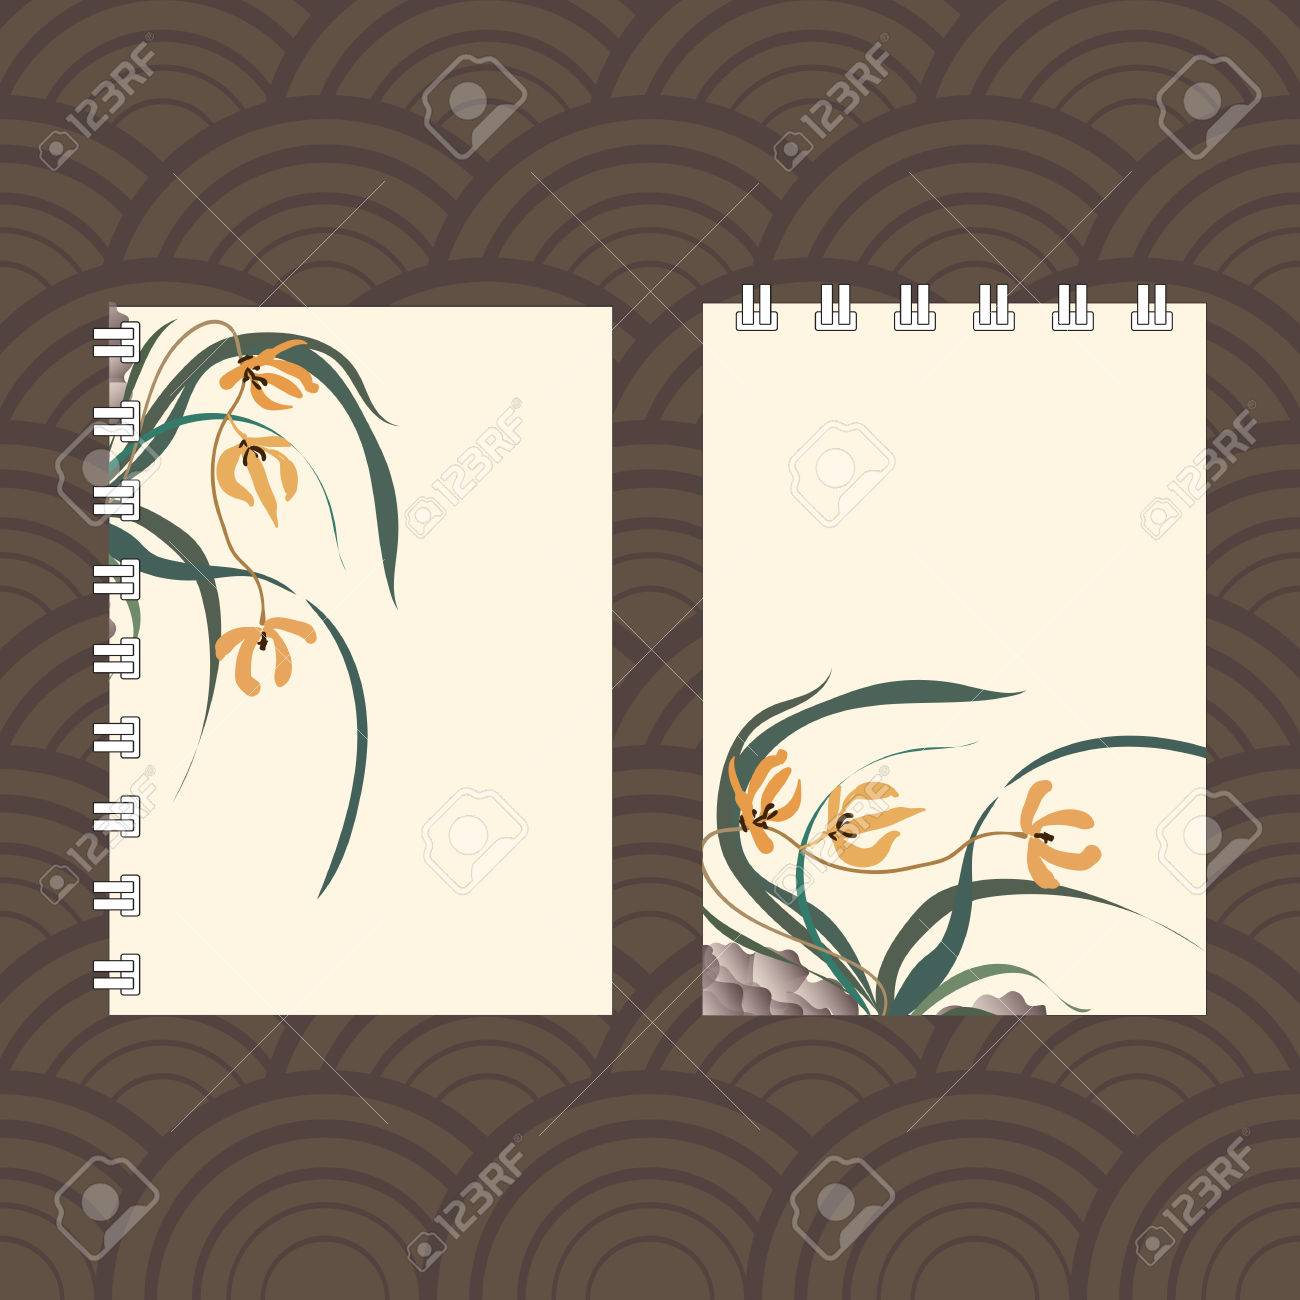 Notebook Cover Design With The Image Of Hand Drawing Illustration